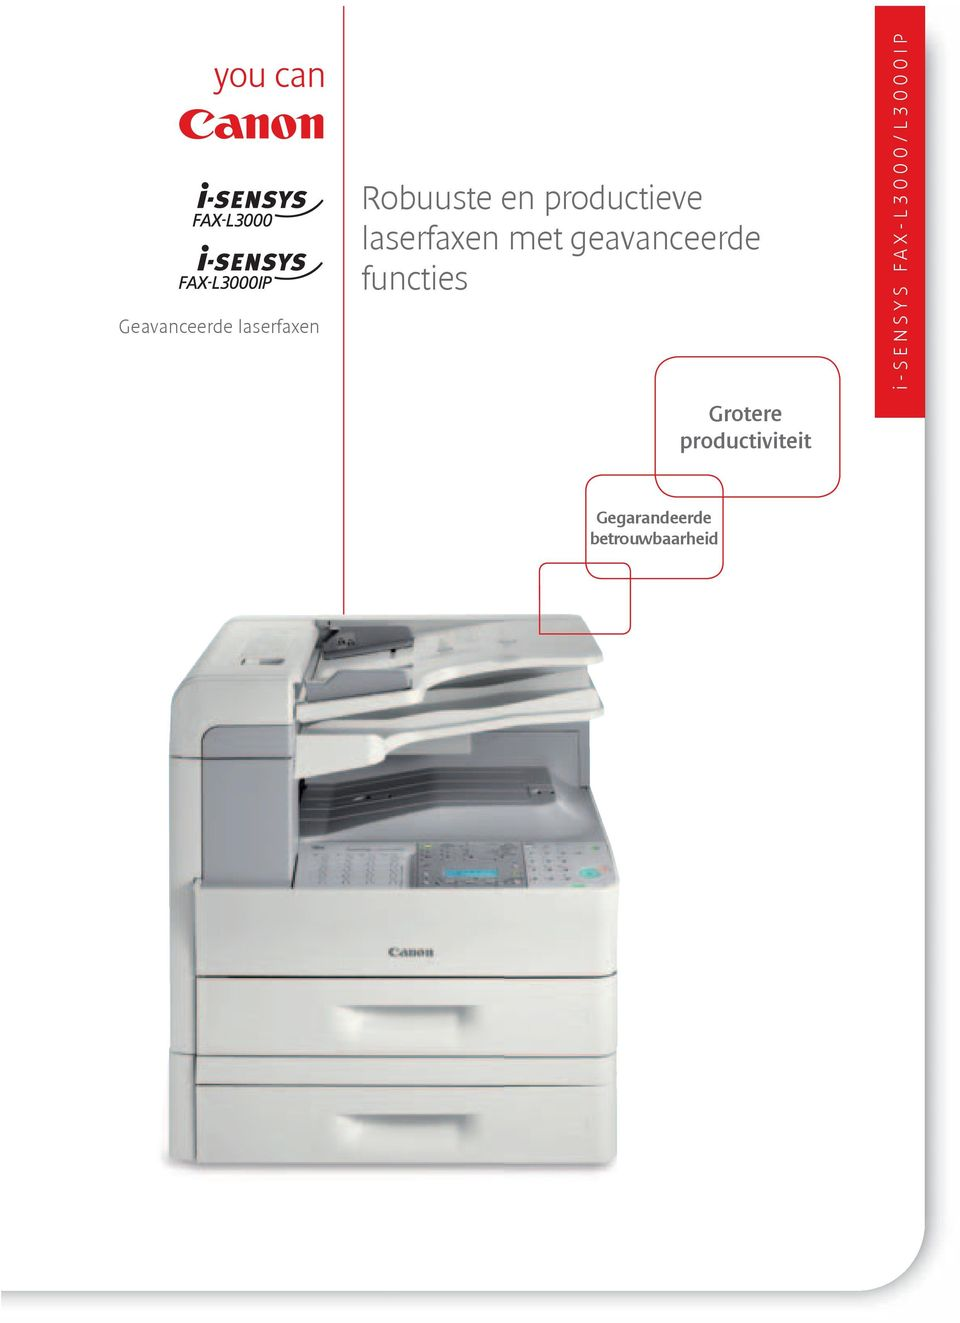 functies i-sensys SCANFRONT FAX-L3000/L3000IP